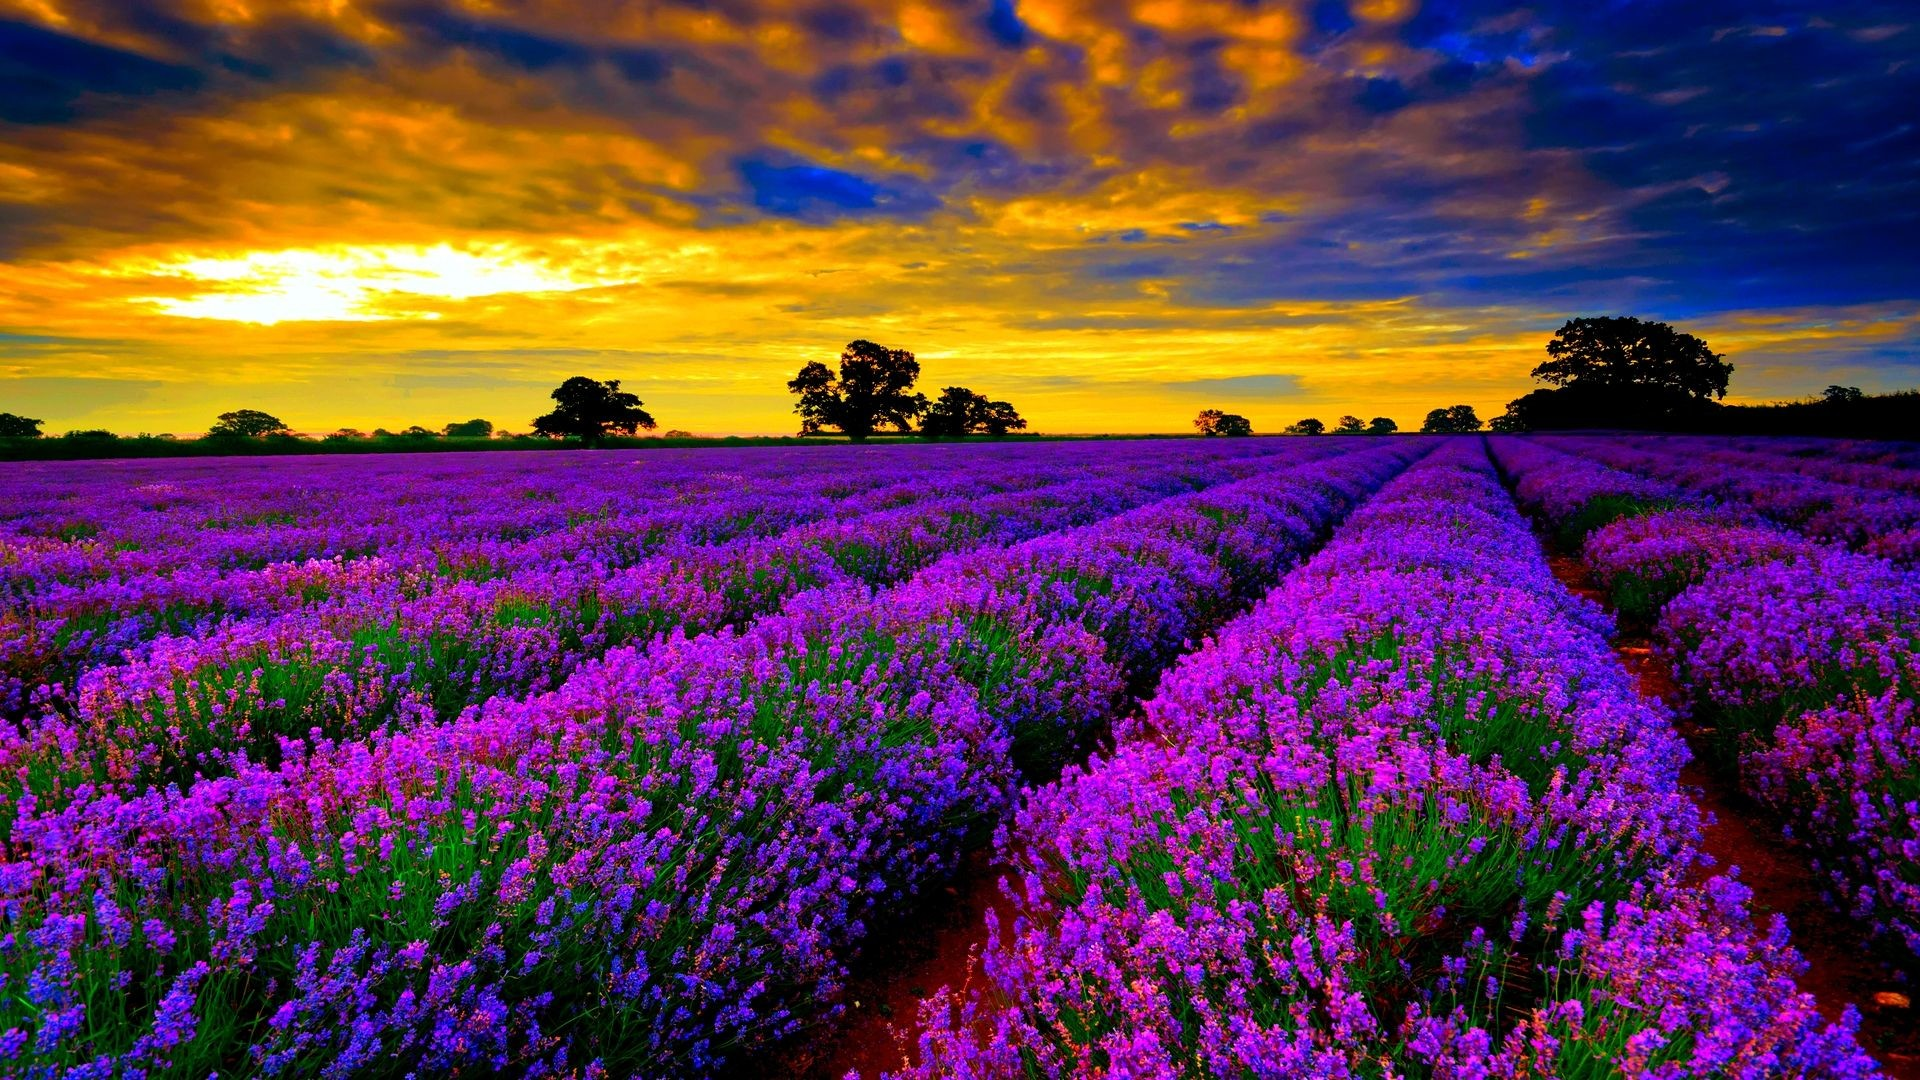 1920x1080 most beautiful field of lavender flowers widescreen desktop wallpapers hd  4k high definition windows 10 colourful